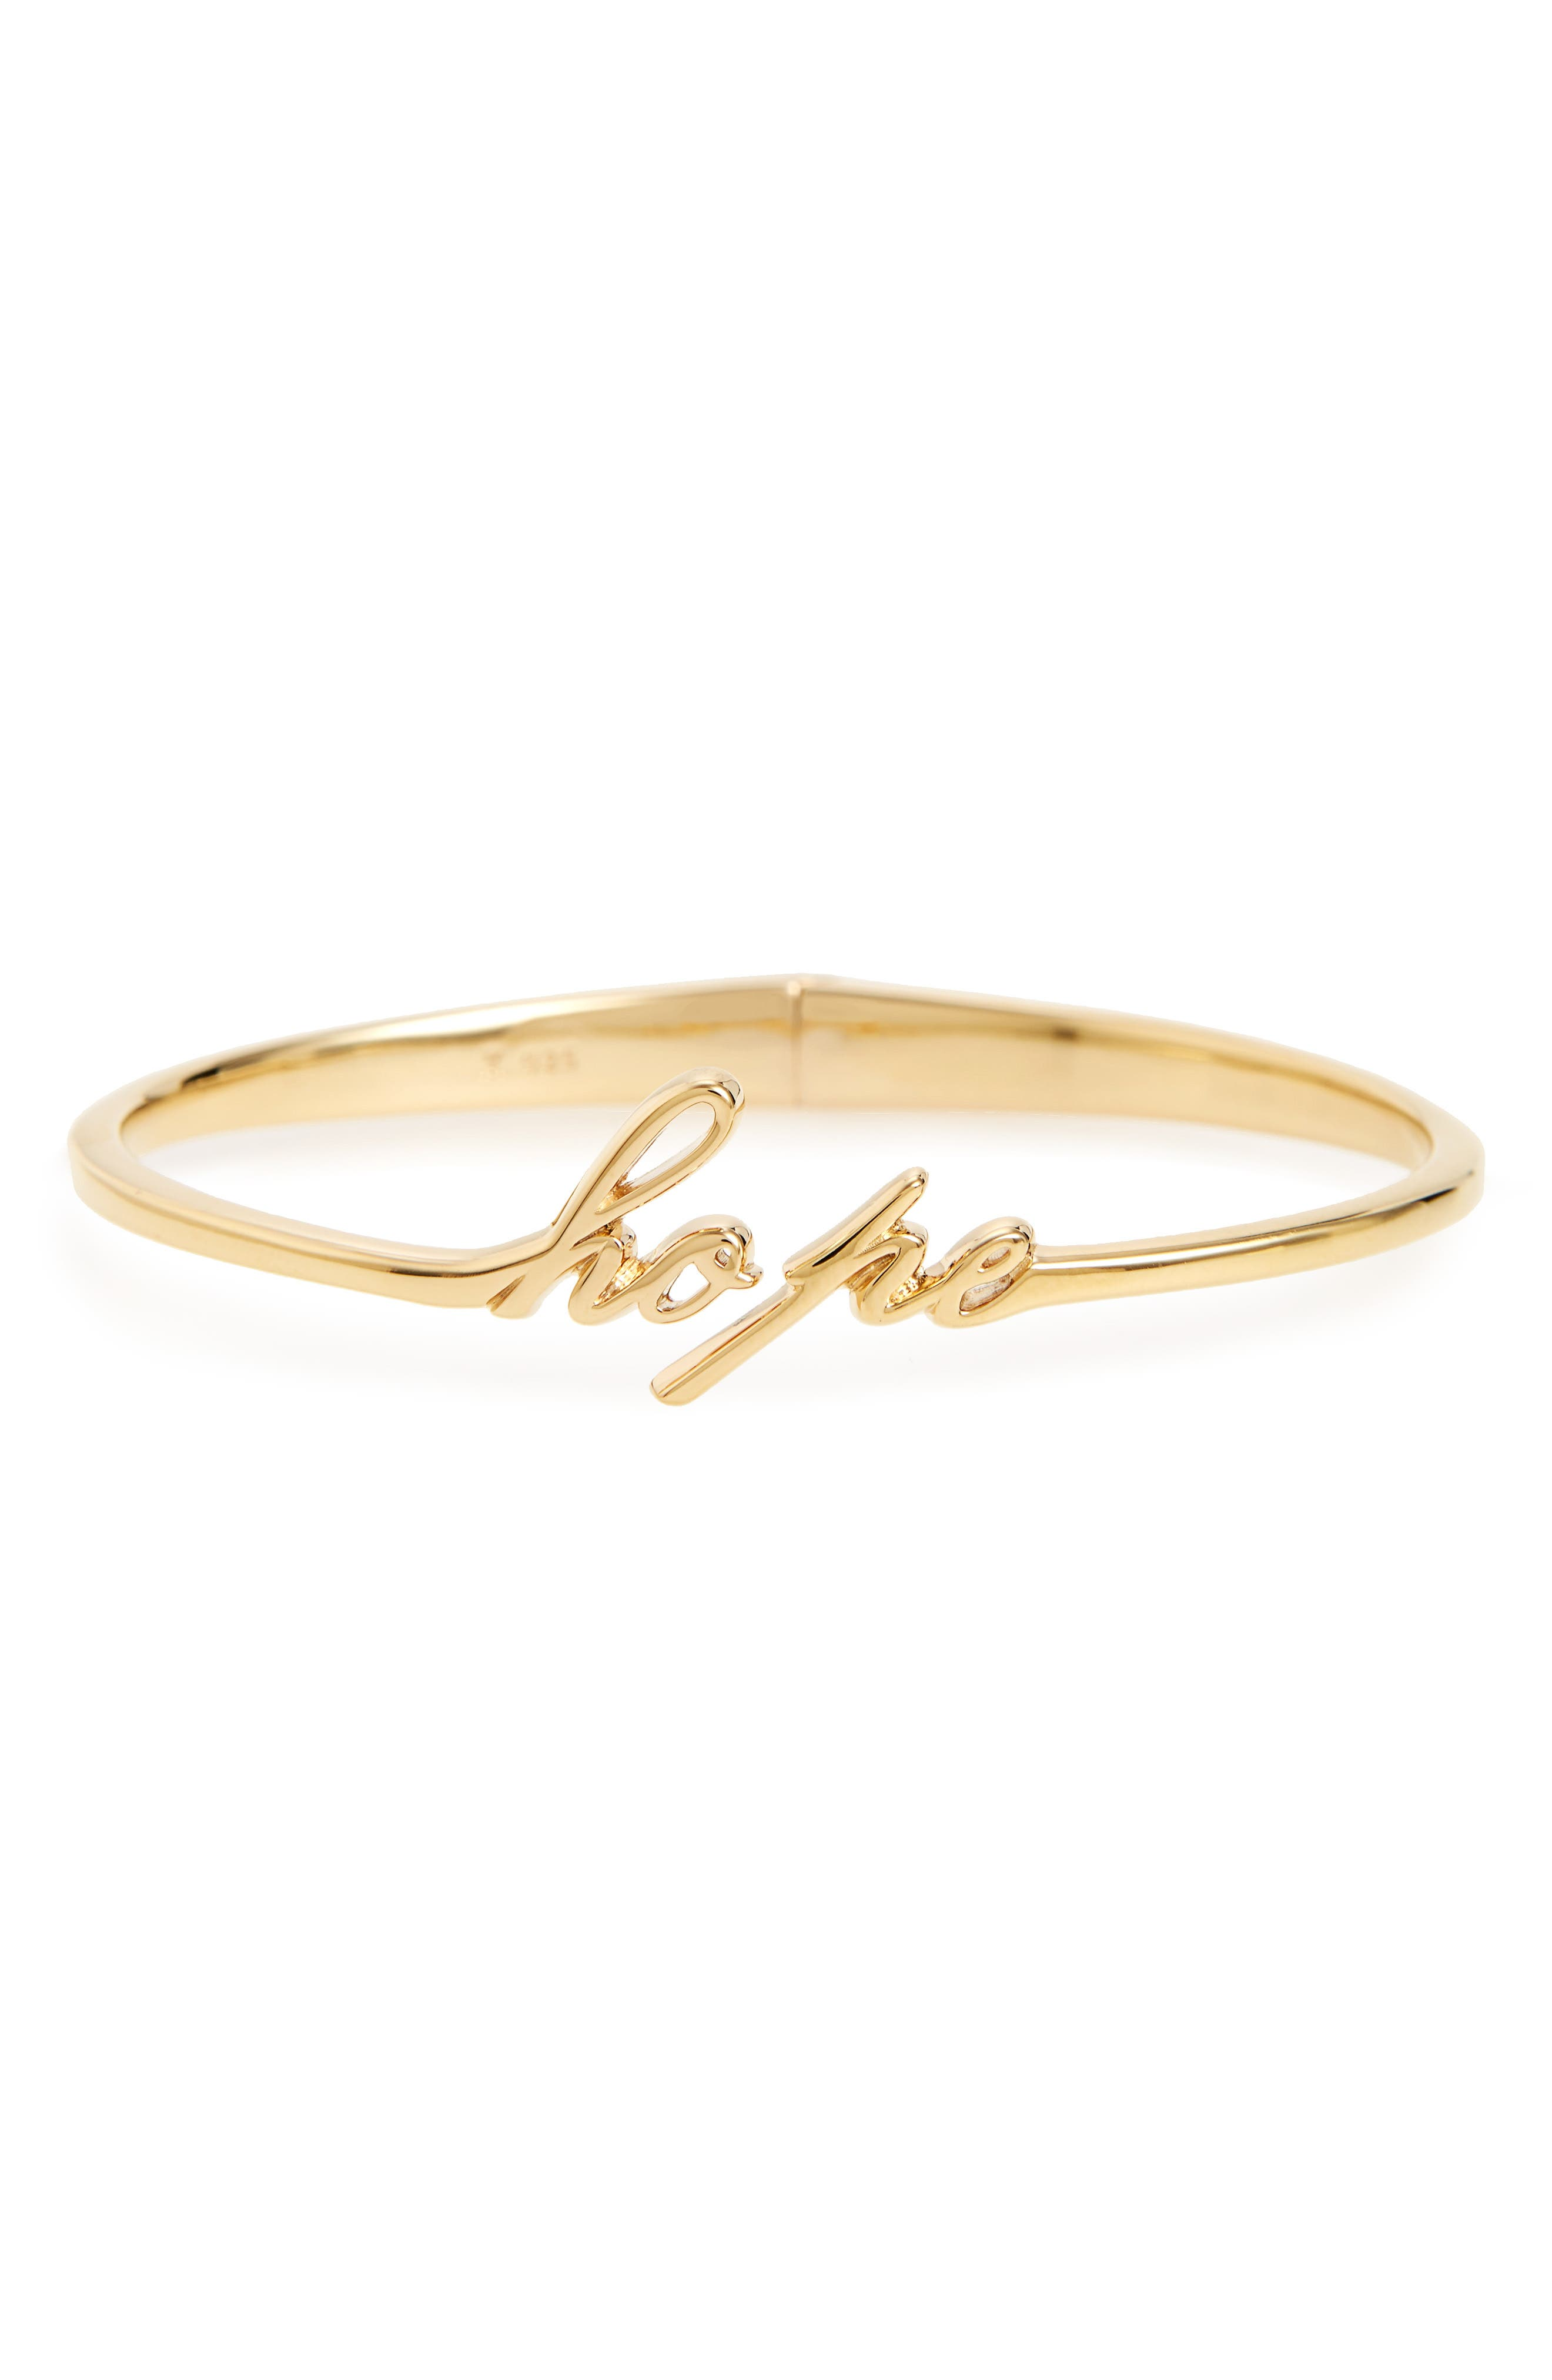 Judith Jack To Live by Hope Hinge Bangle